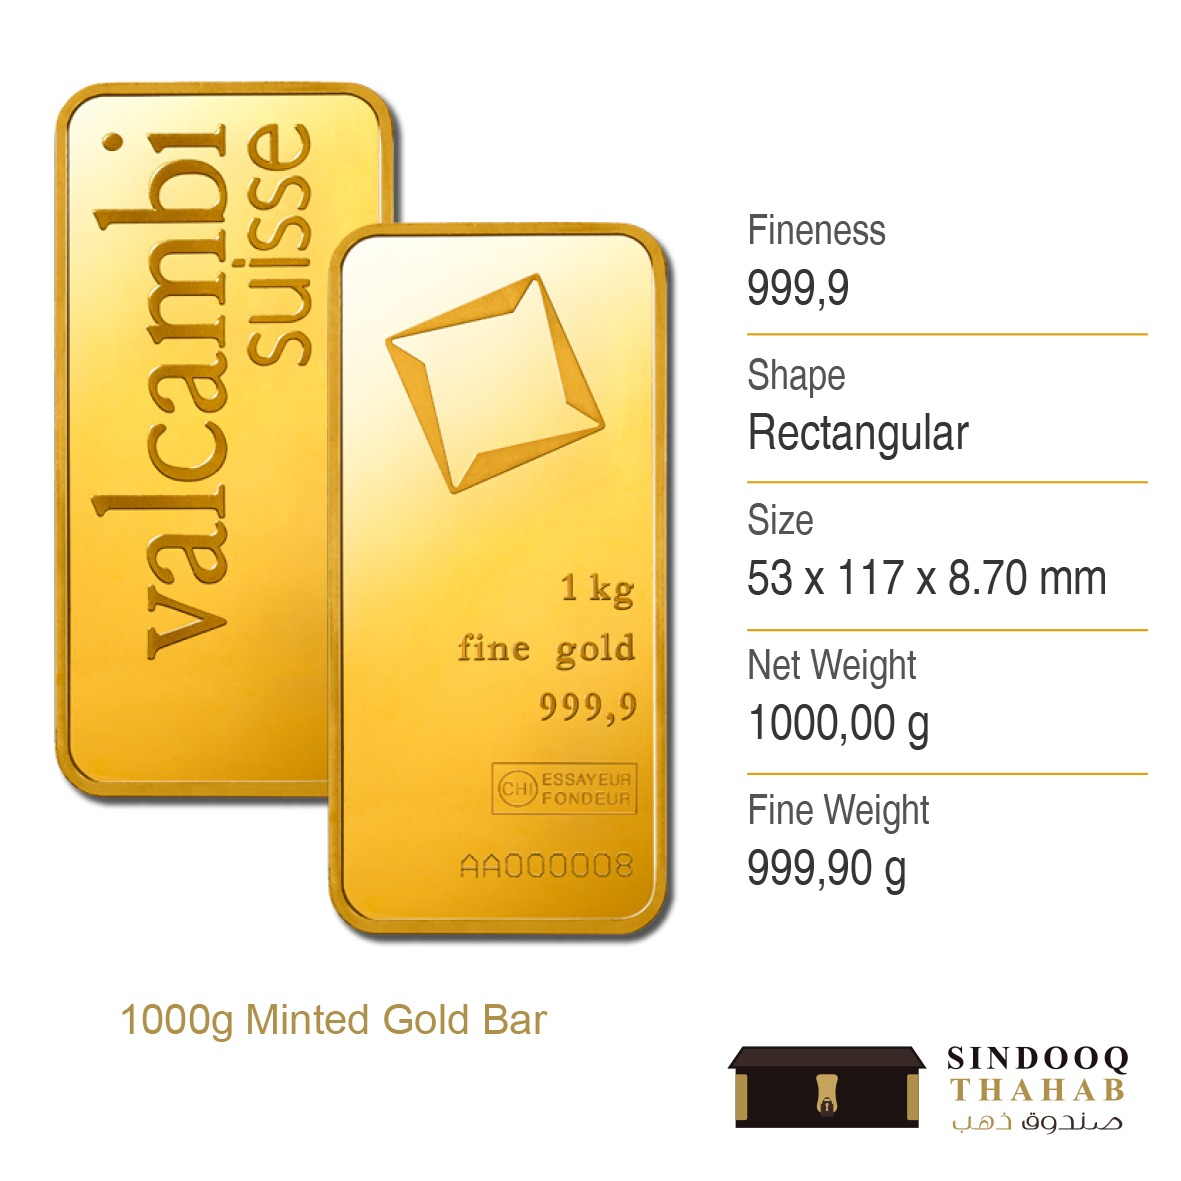 1000g Minted Gold Bar